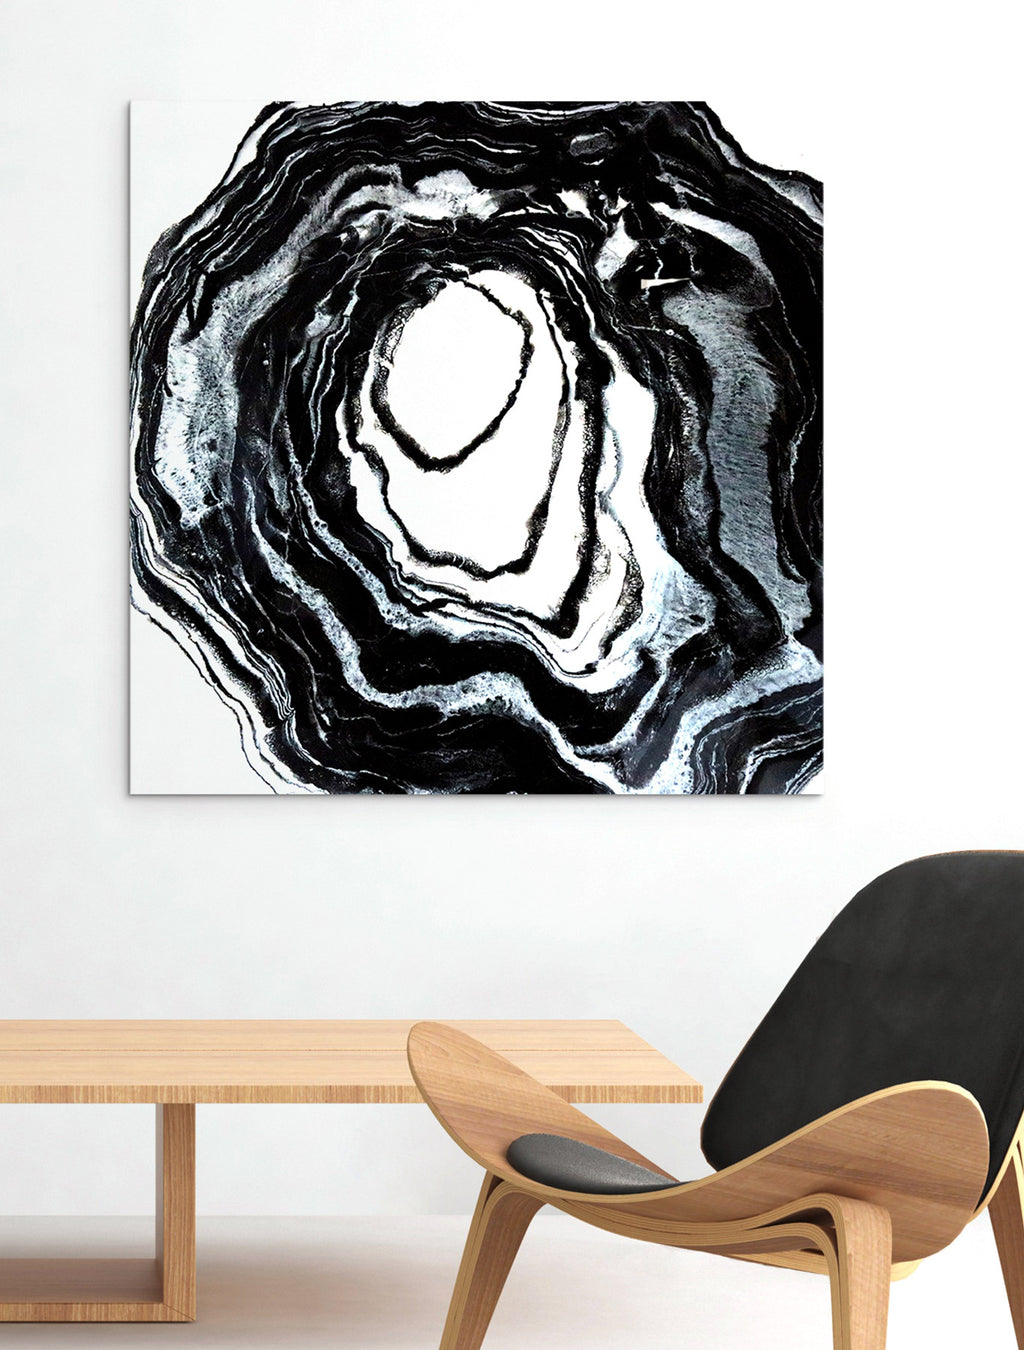 Intergalactic on Wall - Abstract Painting By Paige Ring